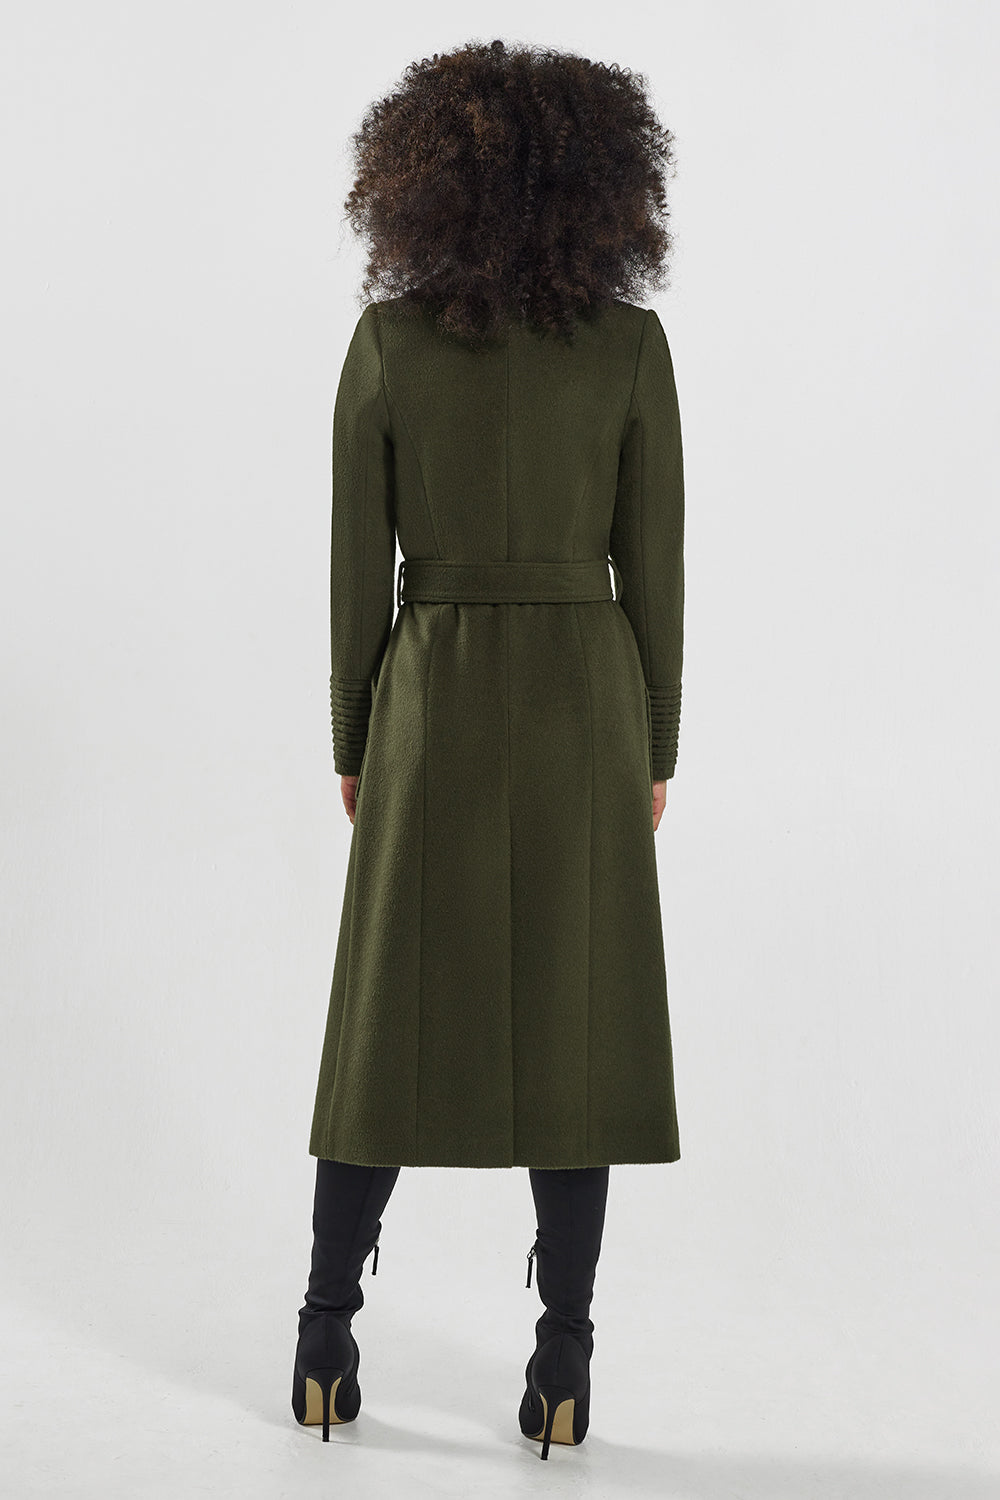 Sentaler Long Wide Collar Wrap Coat featured in Baby Alpaca and available in Olive. Seen from back.